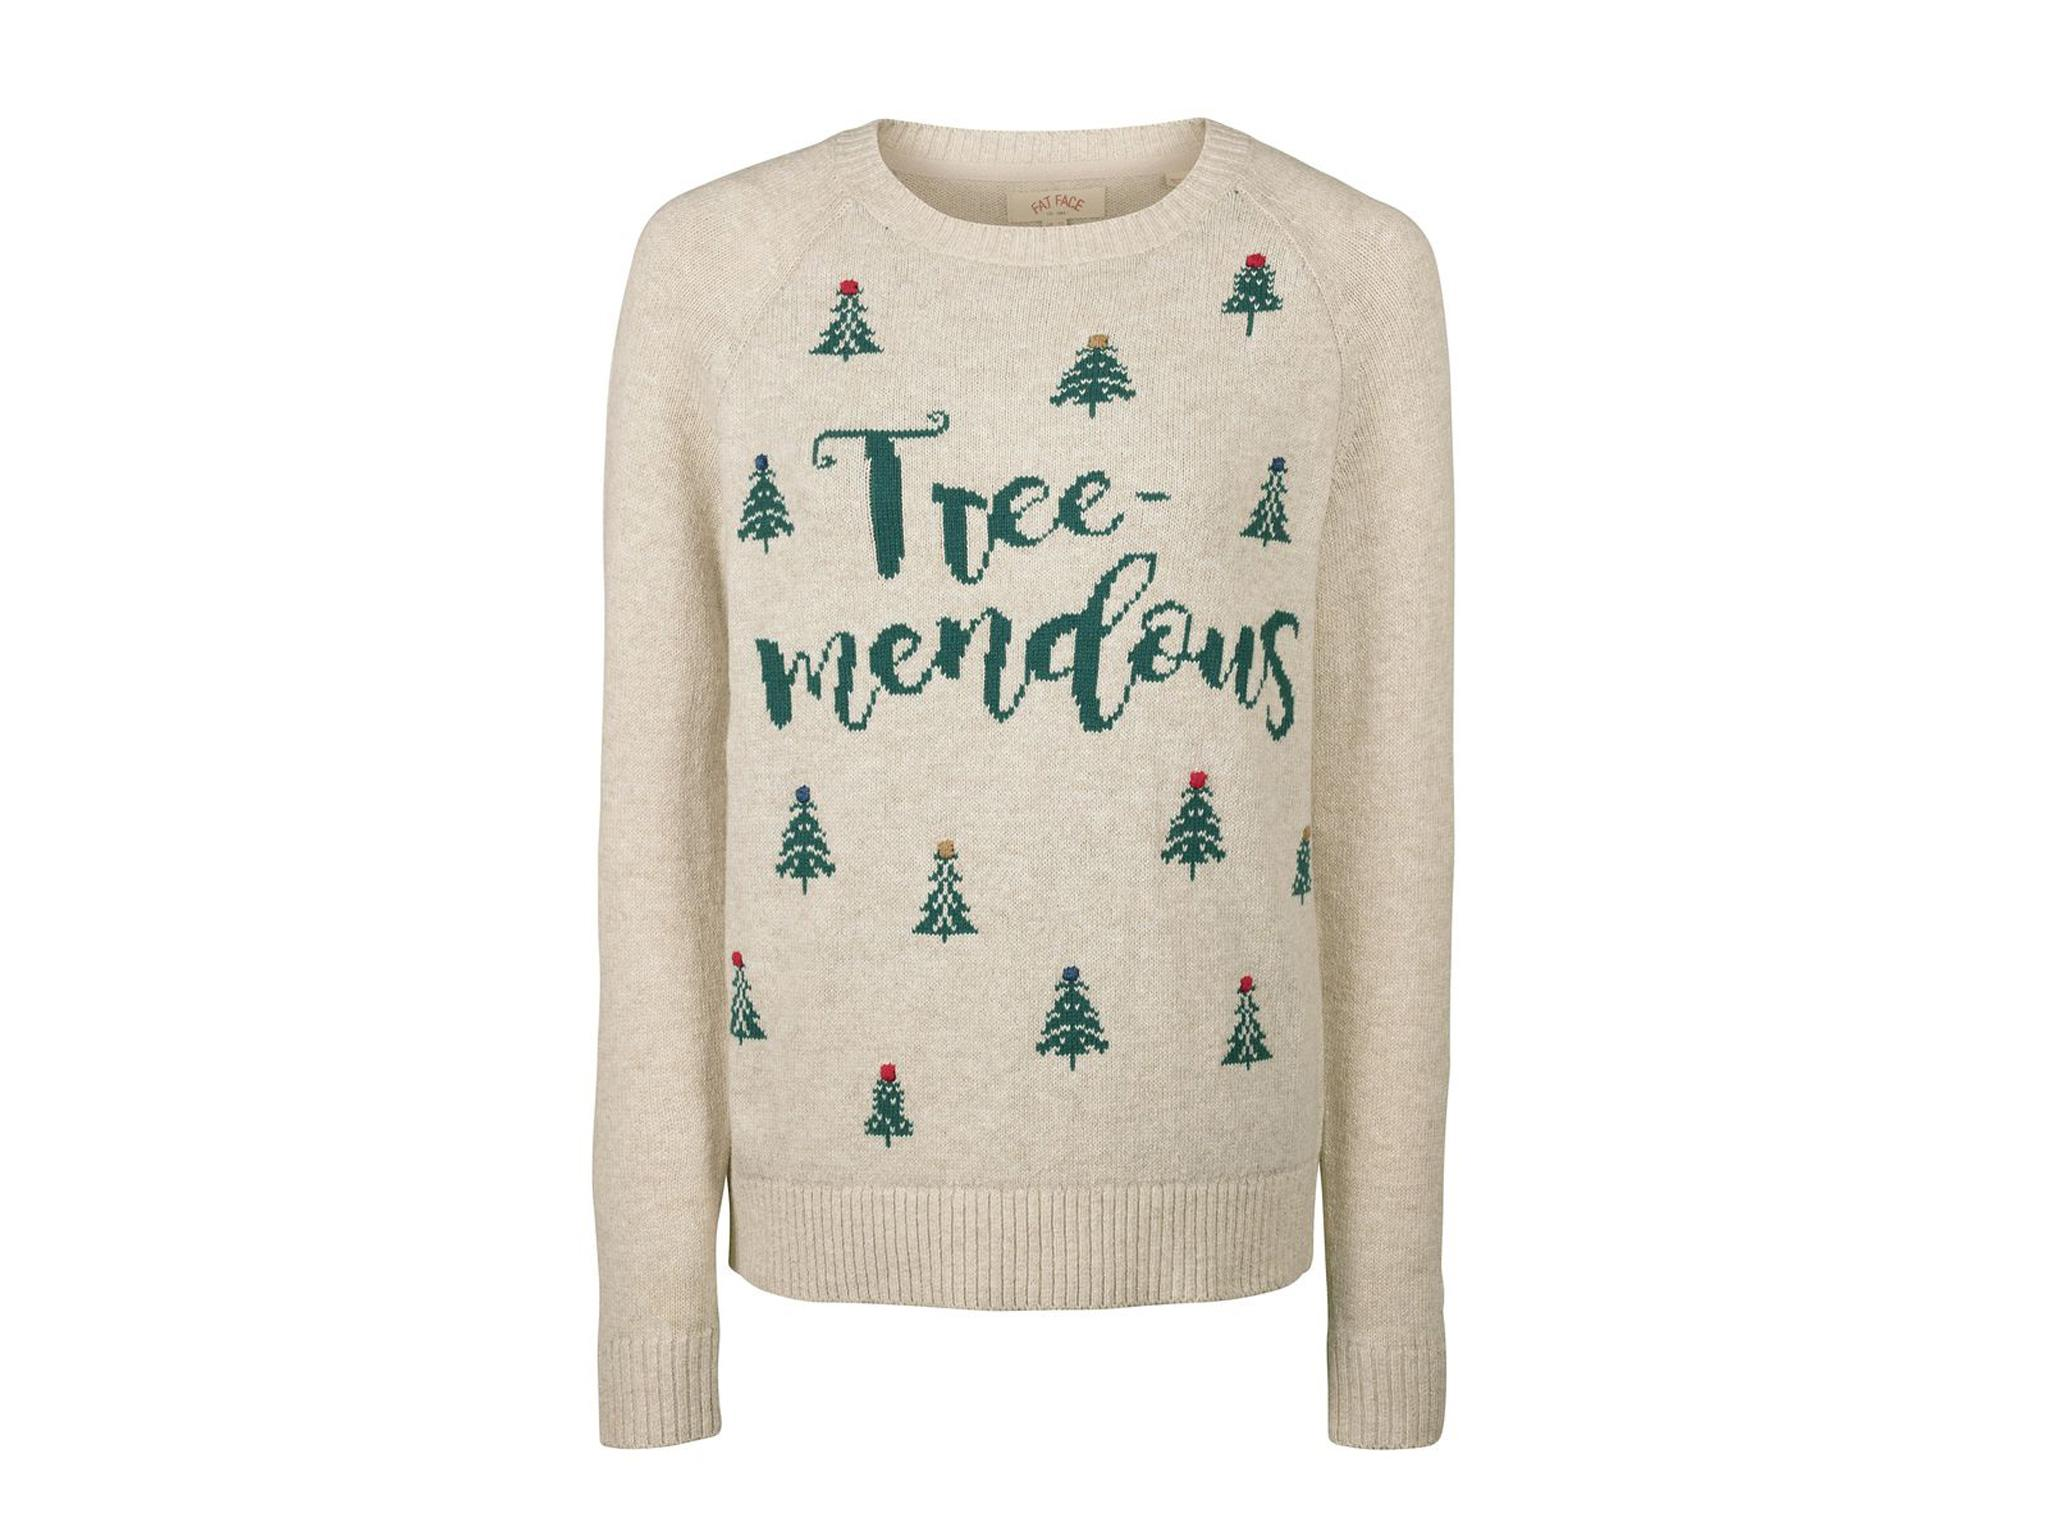 11 best women\'s Christmas jumpers   The Independent